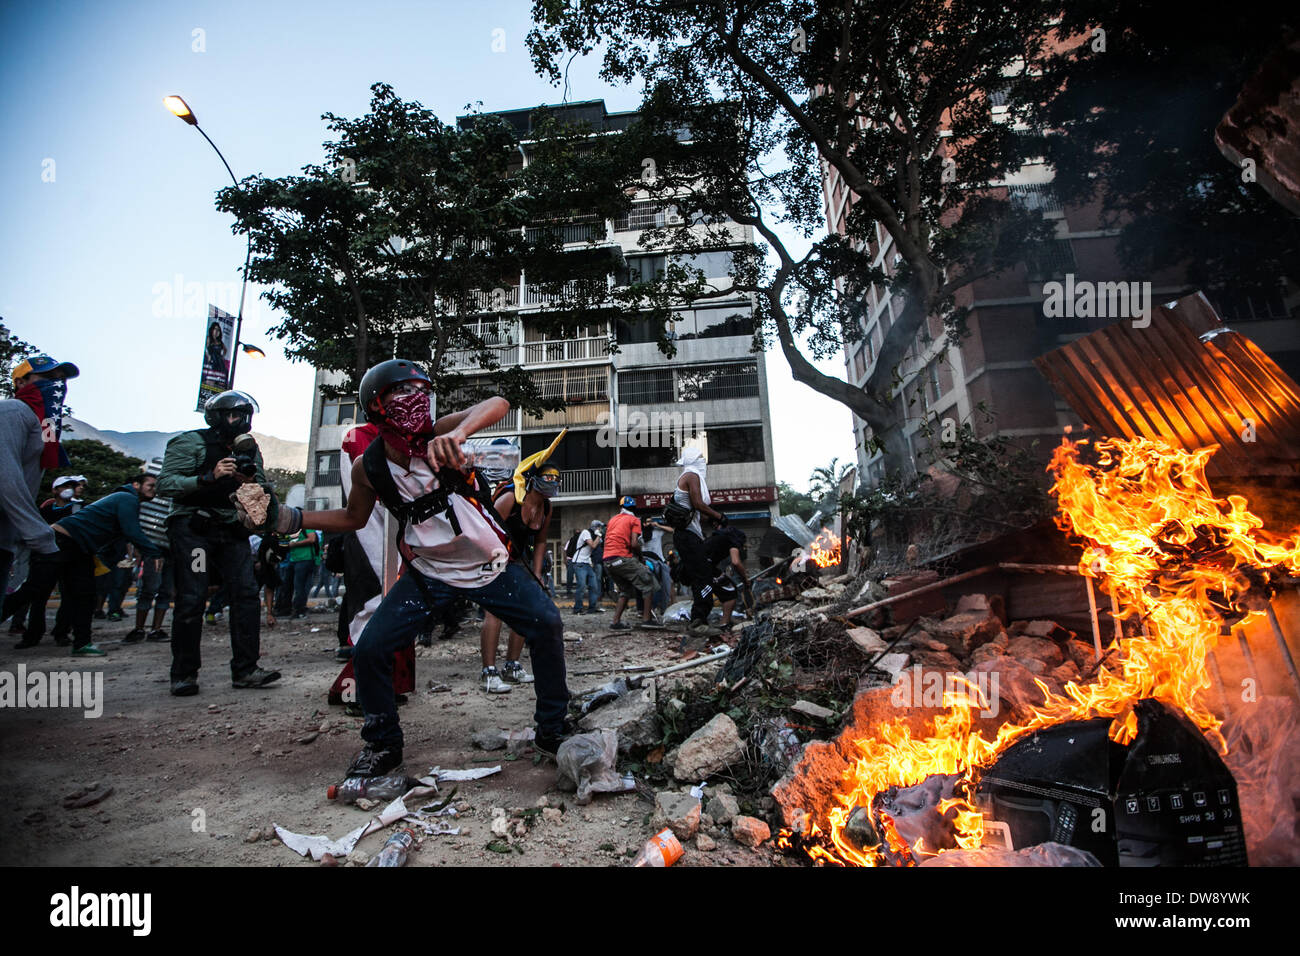 Caracas, Venezuela. 3e Mar, 2014. Les manifestants lancer des pierres dans un affrontement contre la Police nationale Photo Stock